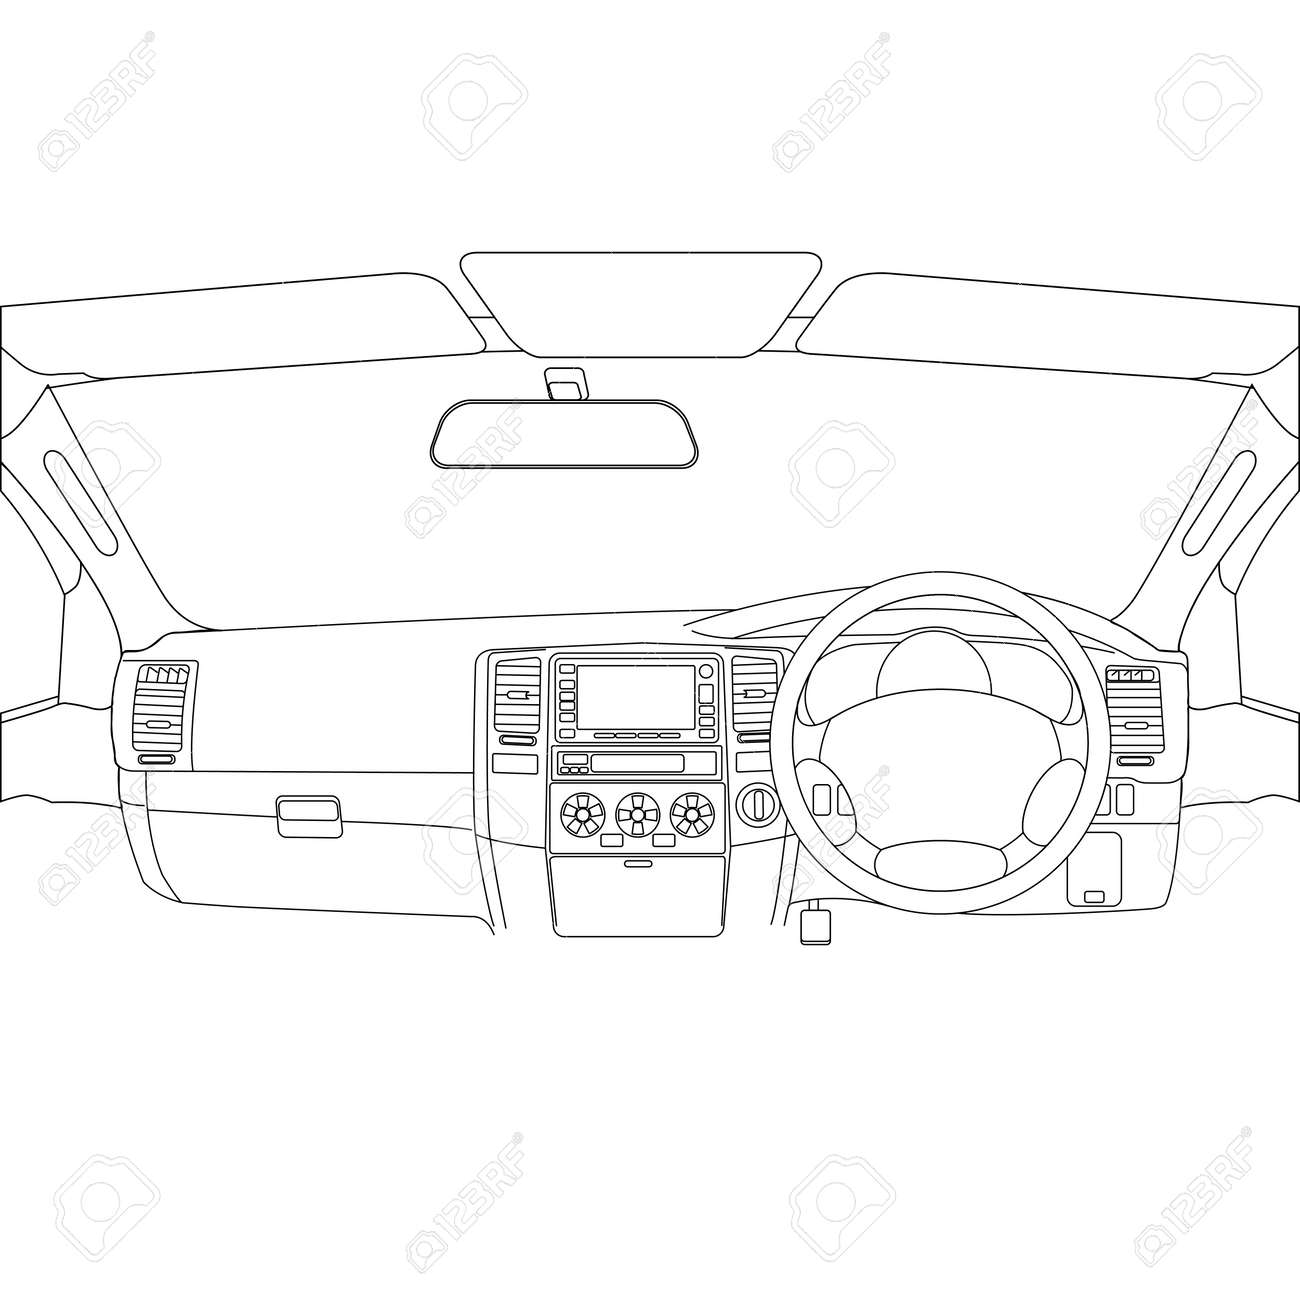 The car without a driver on the road. Stock Vector - 12919303